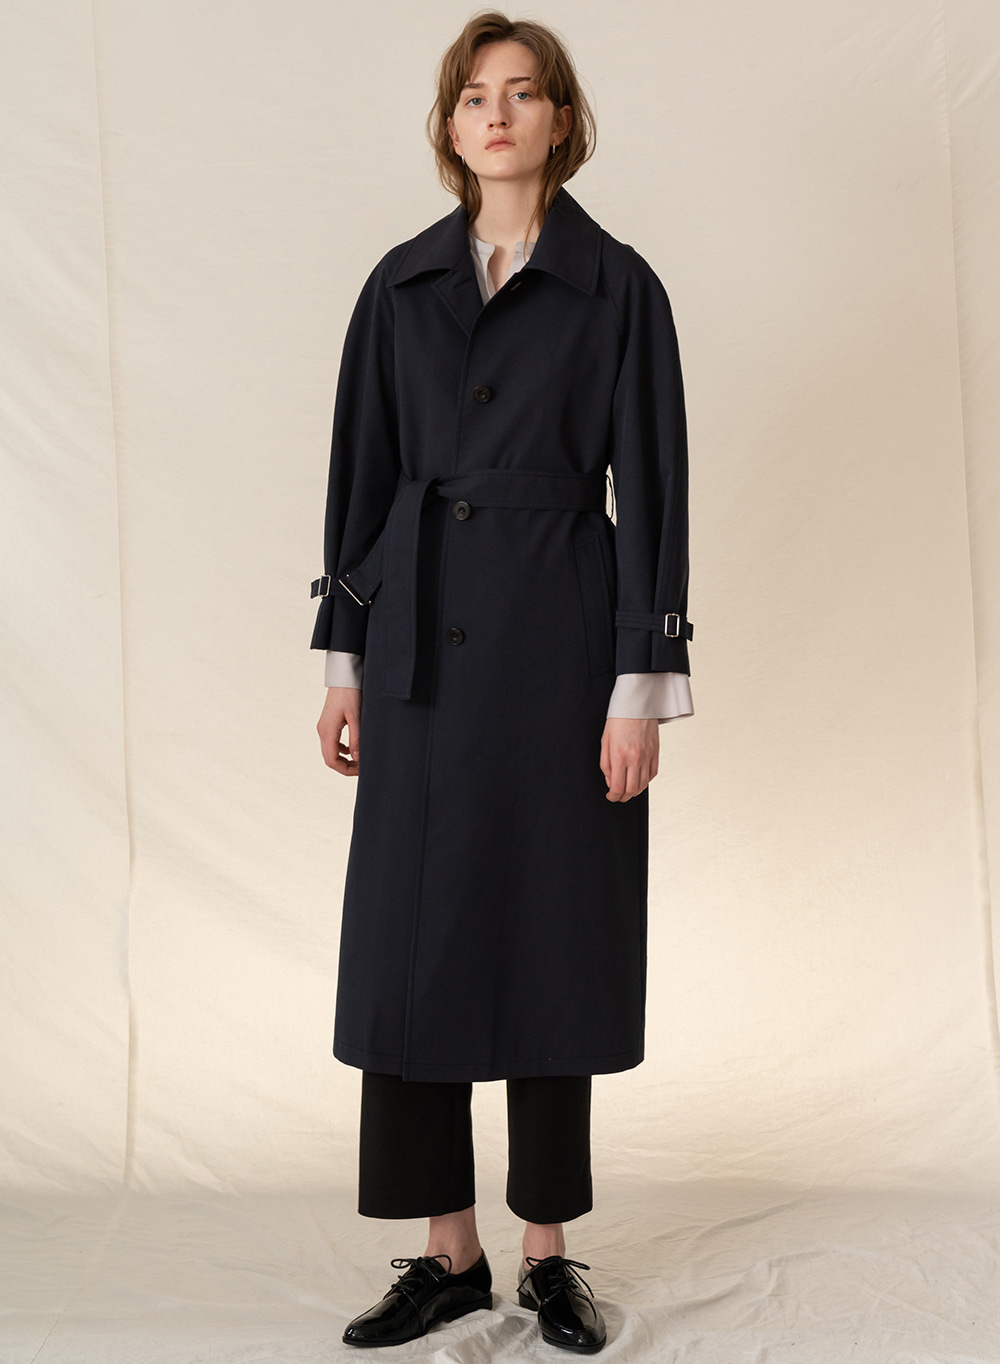 FW19 Cotton blended single trench coat darknavy